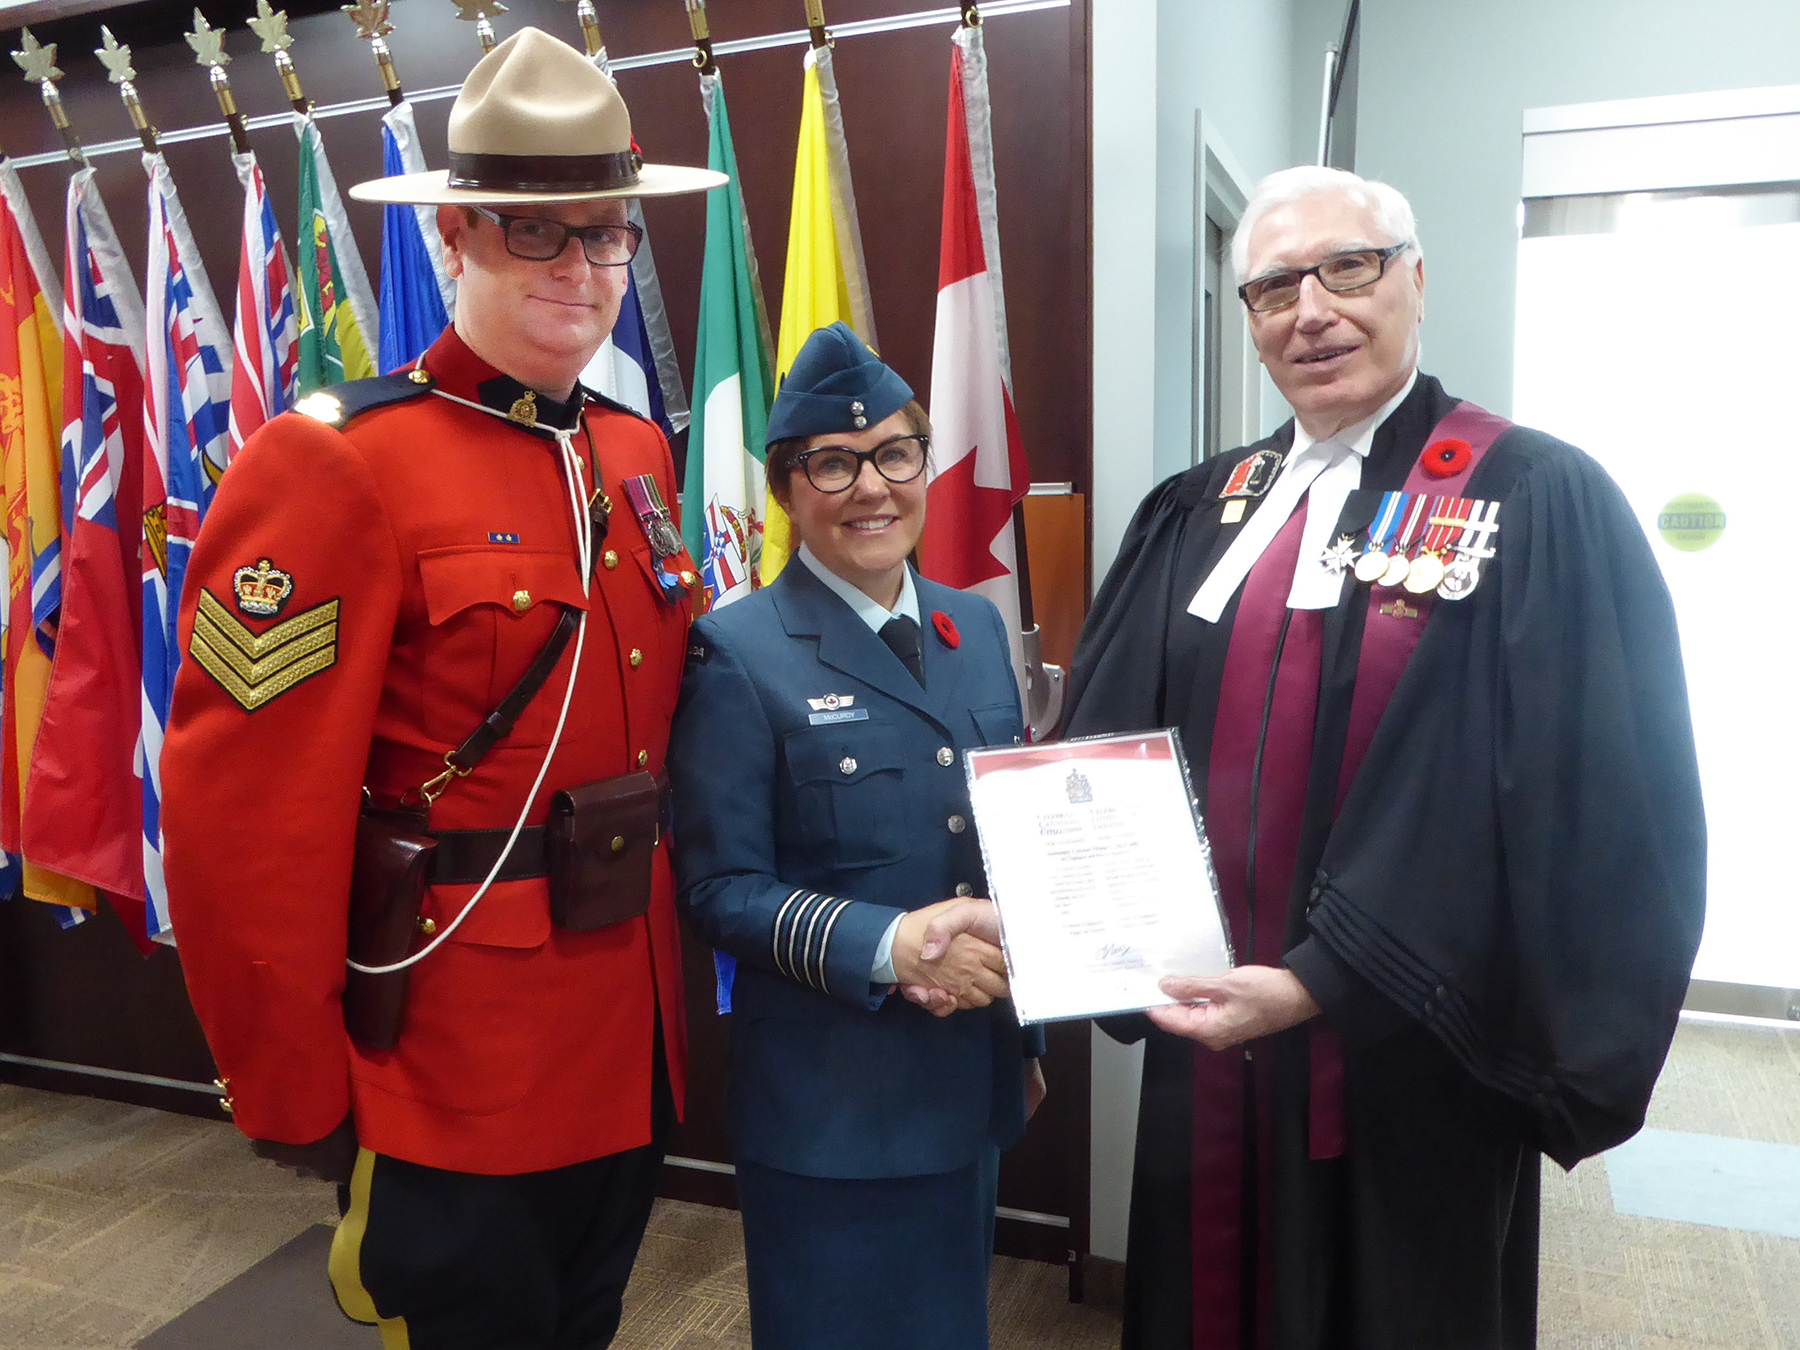 In front of flags, a man in a black ceremonial robe with medals gives a document to a woman in a blue dress uniform as a man wearing a red uniform jacket, black pants and a wide-brimmed hat watches.